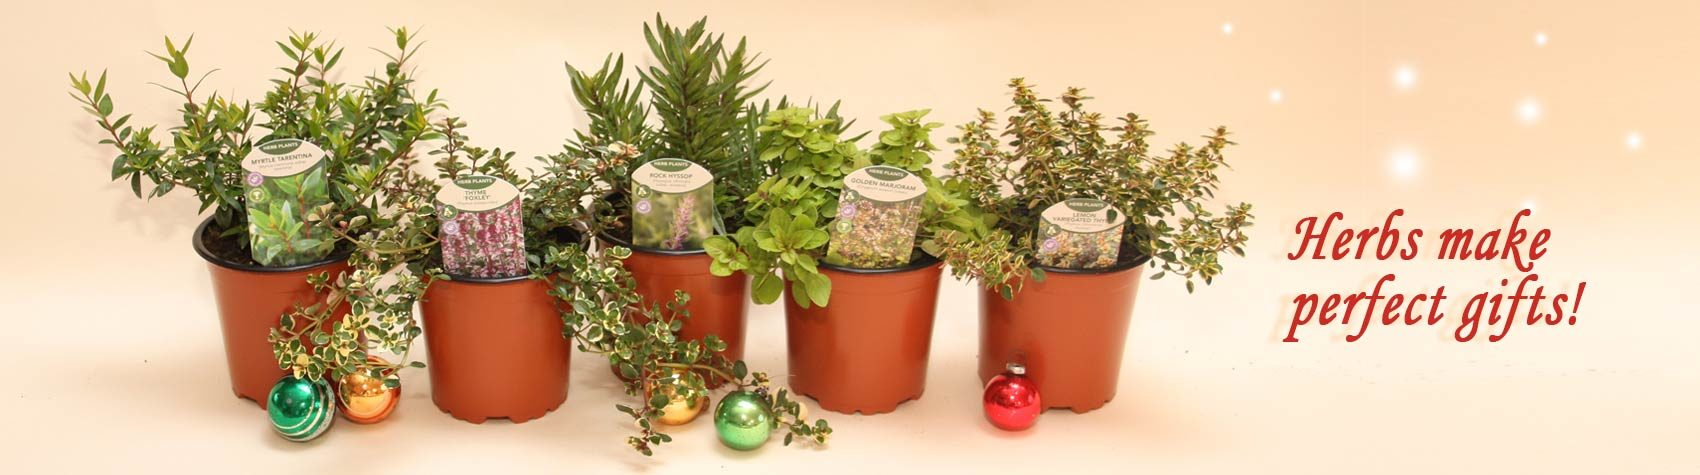 Buy Christmas Gifts - Gardening